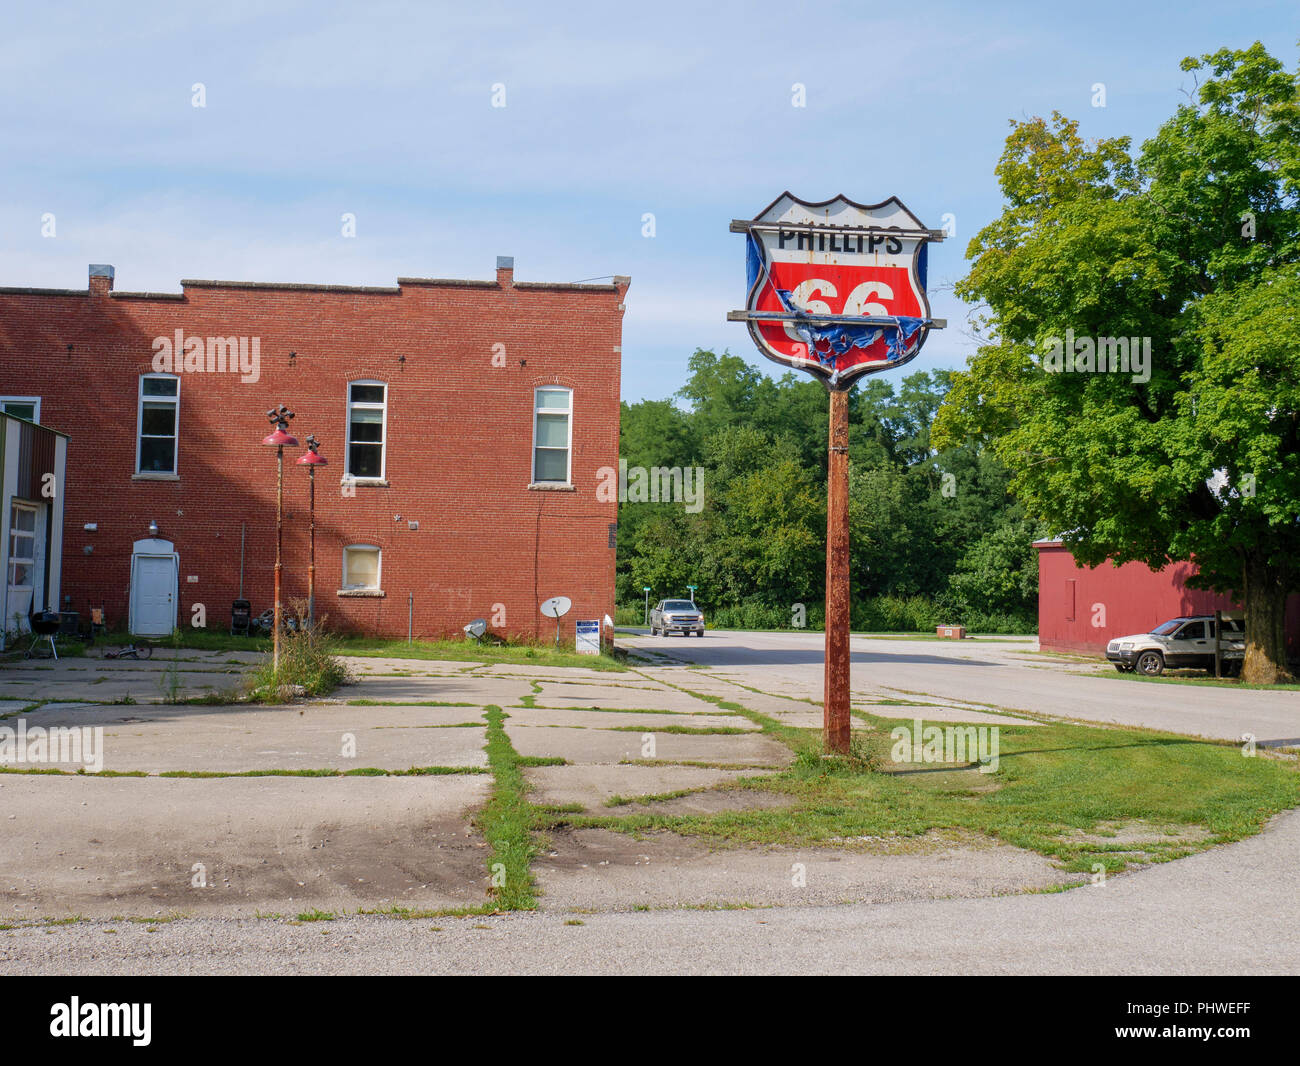 Former Phillips 66 gas station. Stockwell, Indiana. - Stock Image